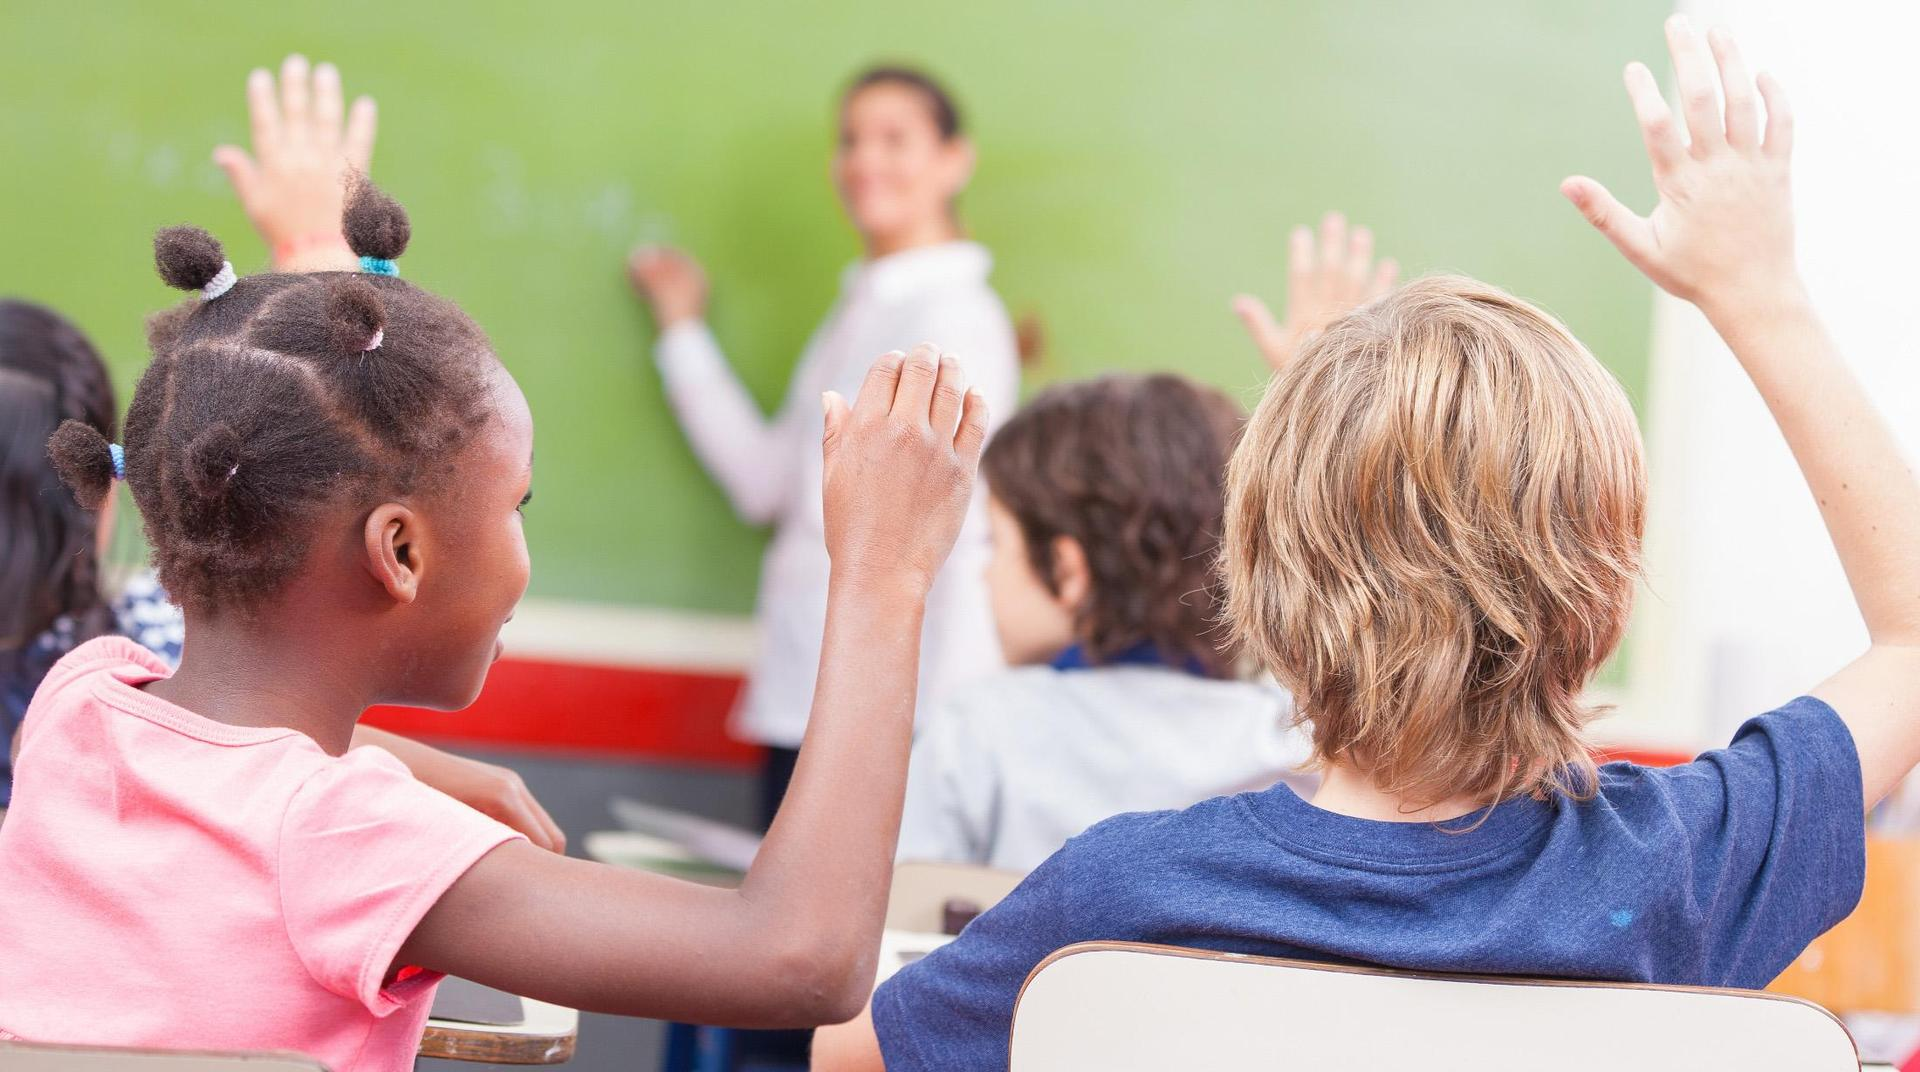 Students with their hands raised, with a teacher at the head of the class